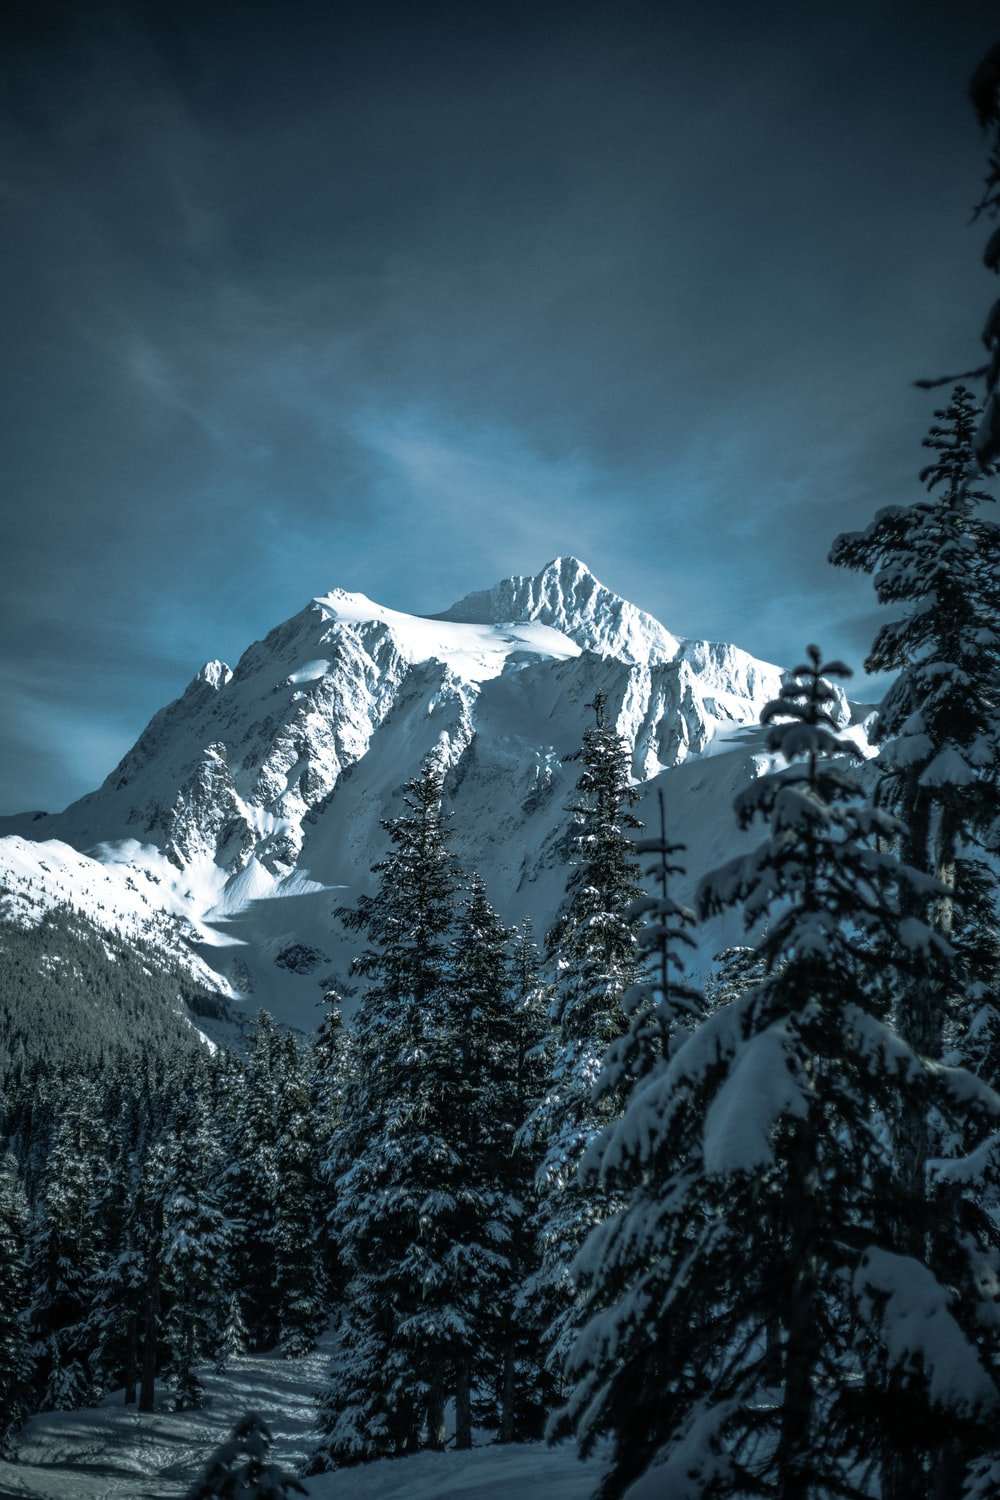 snow-covered pine trees and mountain